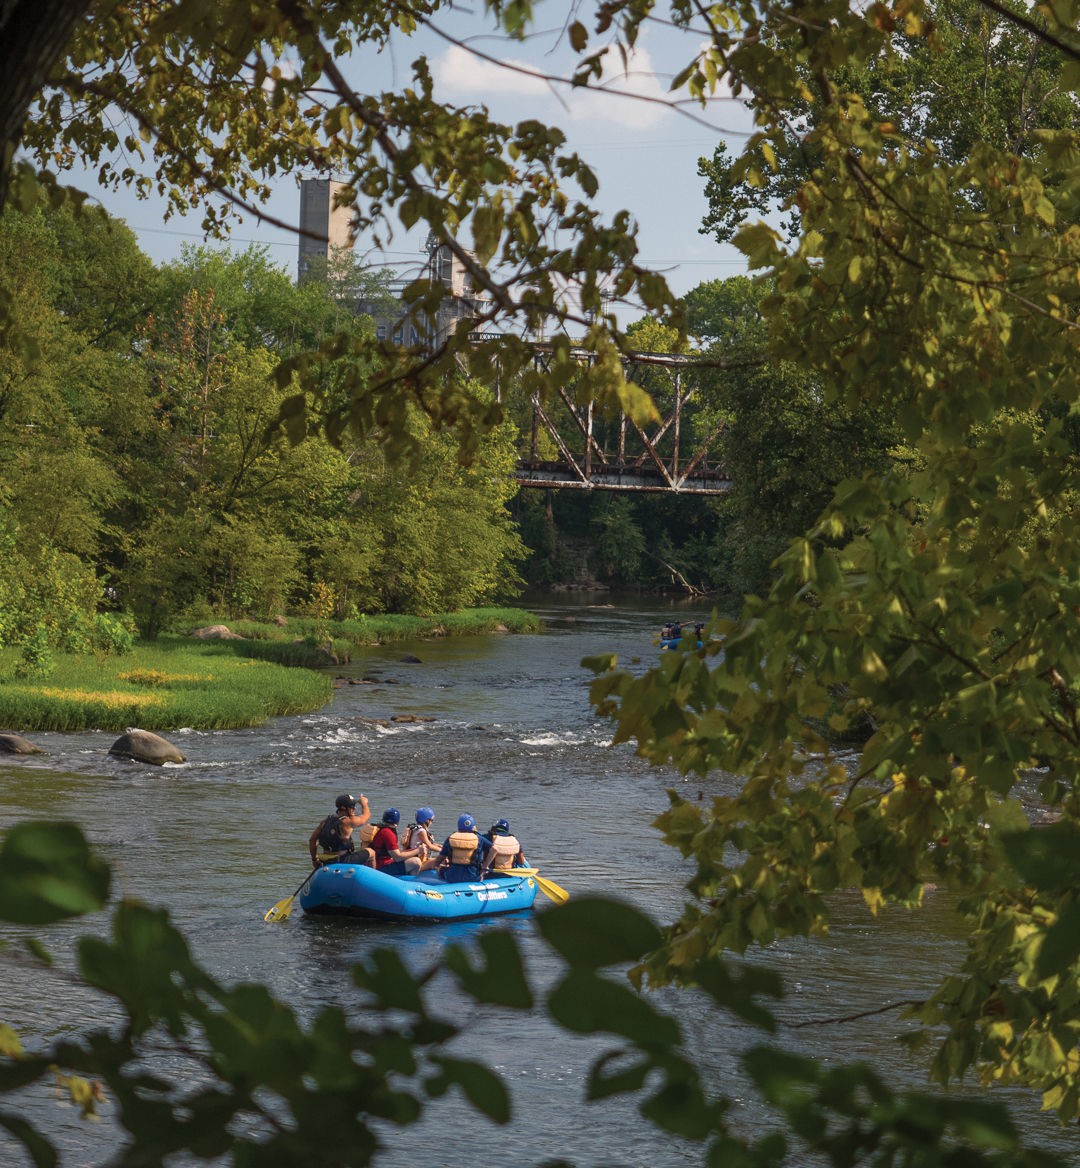 Rafting on the James River